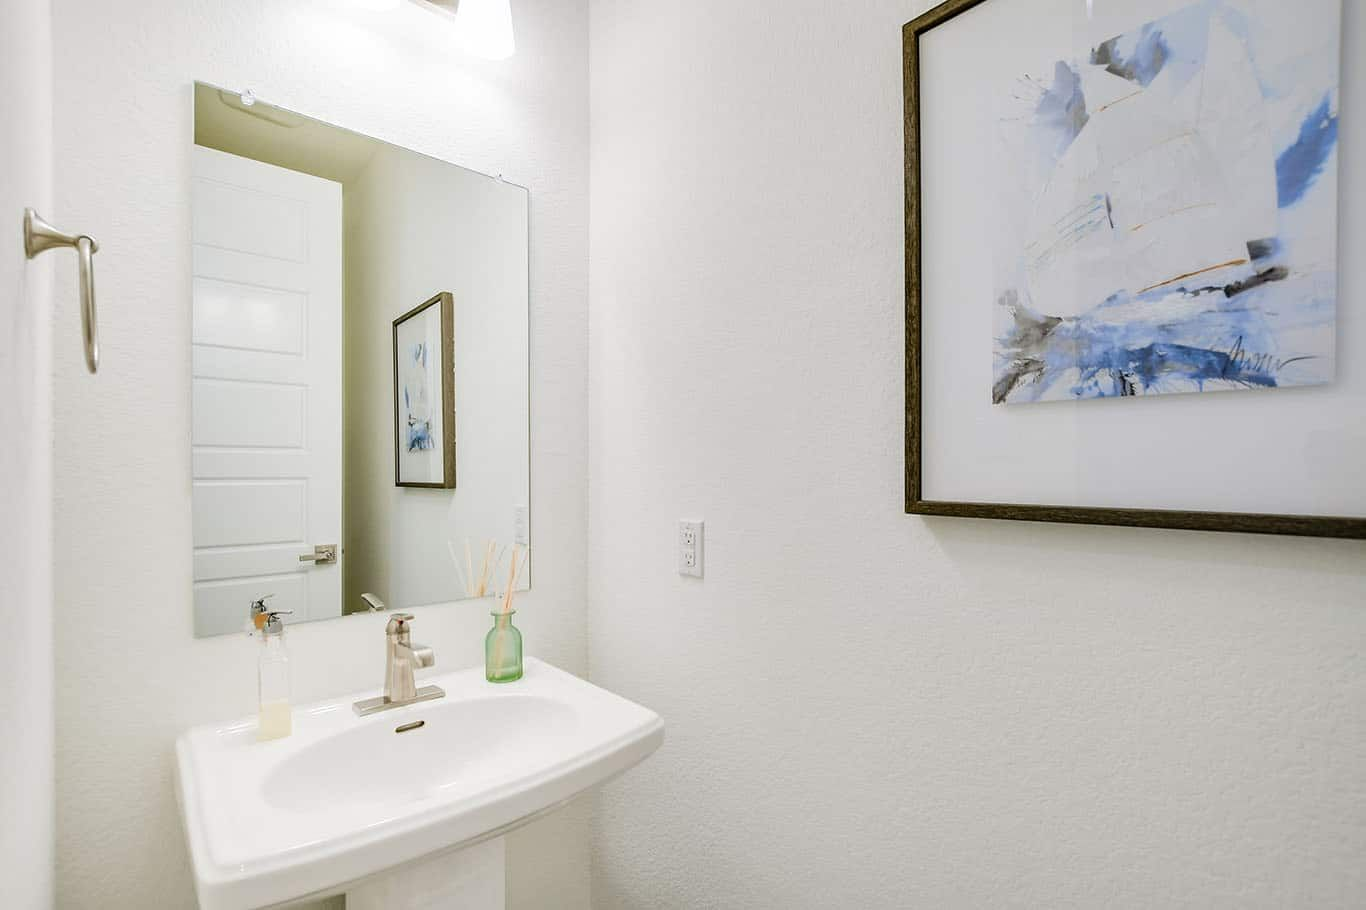 Bathroom featured in the Foss By Tri Pointe Homes in Austin, TX